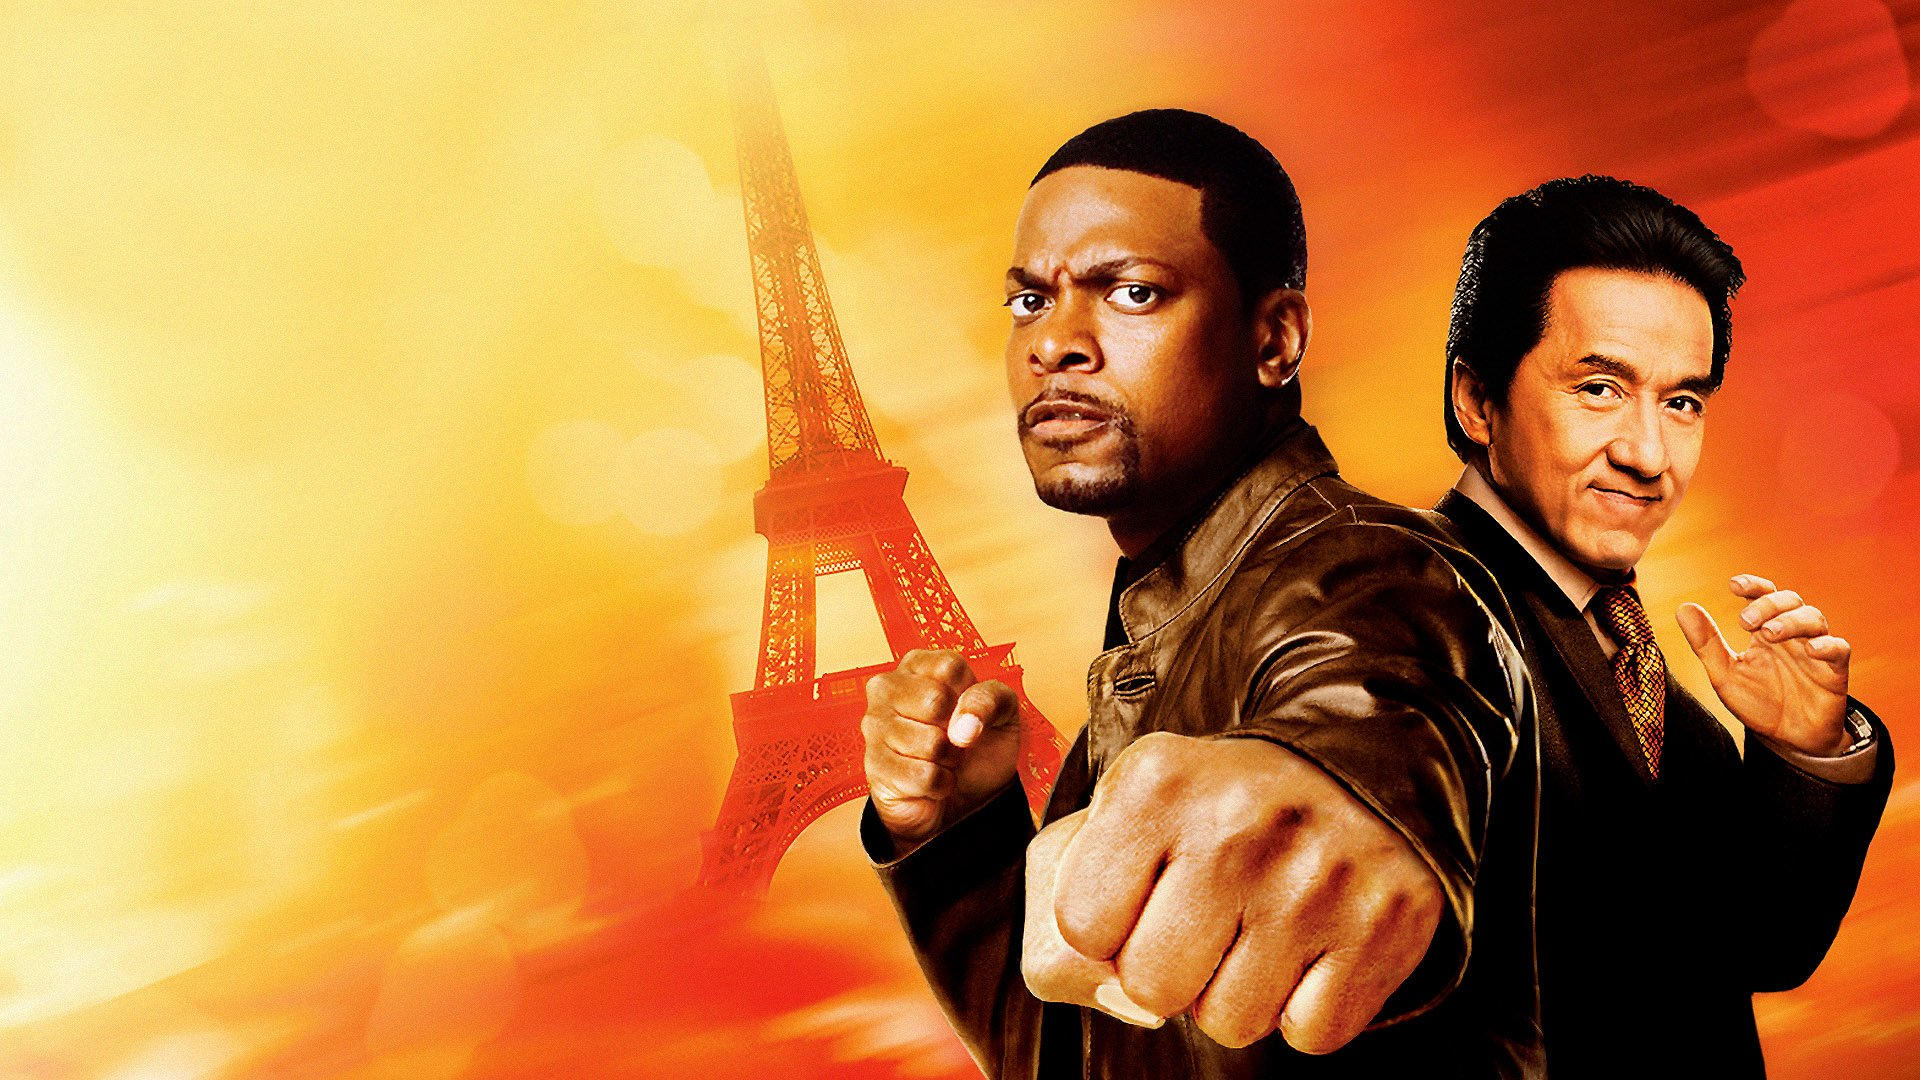 Rush hour 3 hd wallpaper background image 1920x1080 id 812843 wallpaper abyss - Jackie chan wallpaper download ...